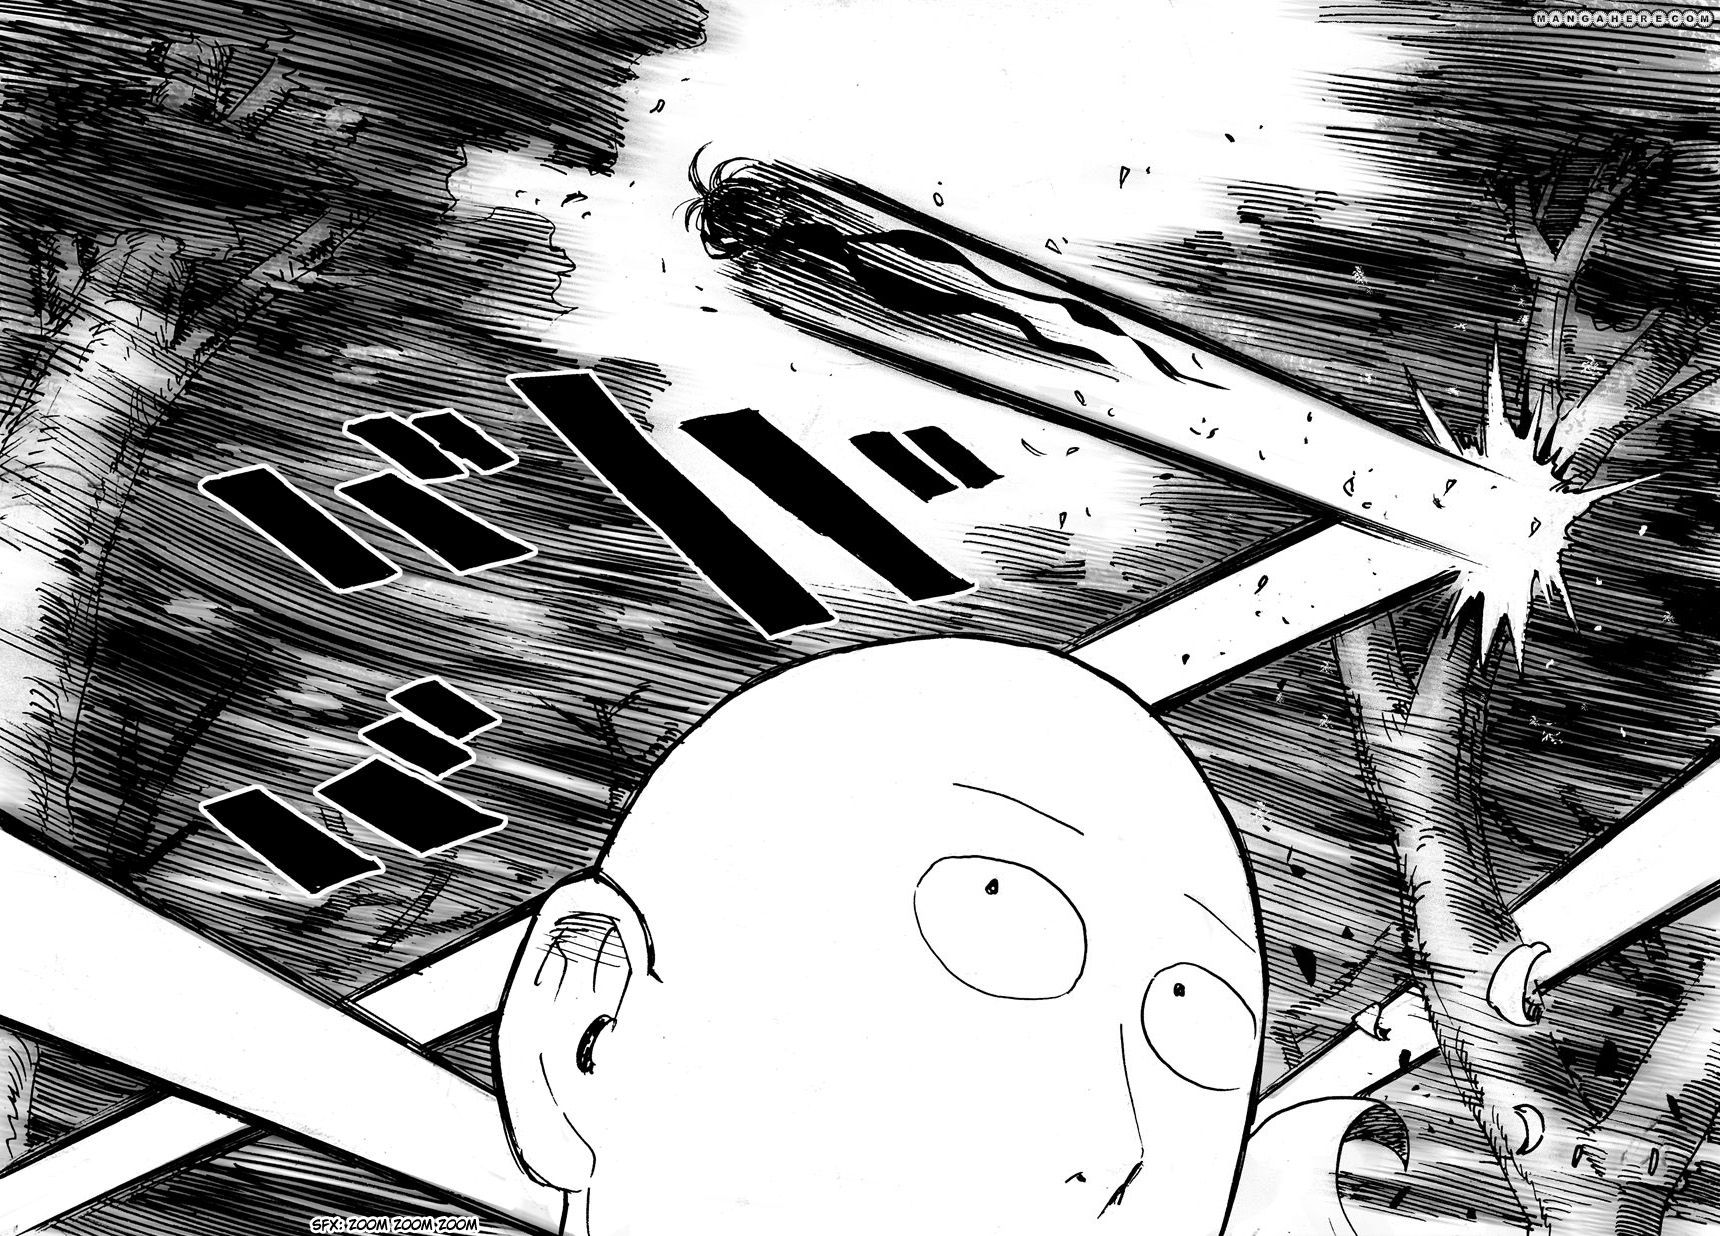 Onepunch-Man - Chapter 16